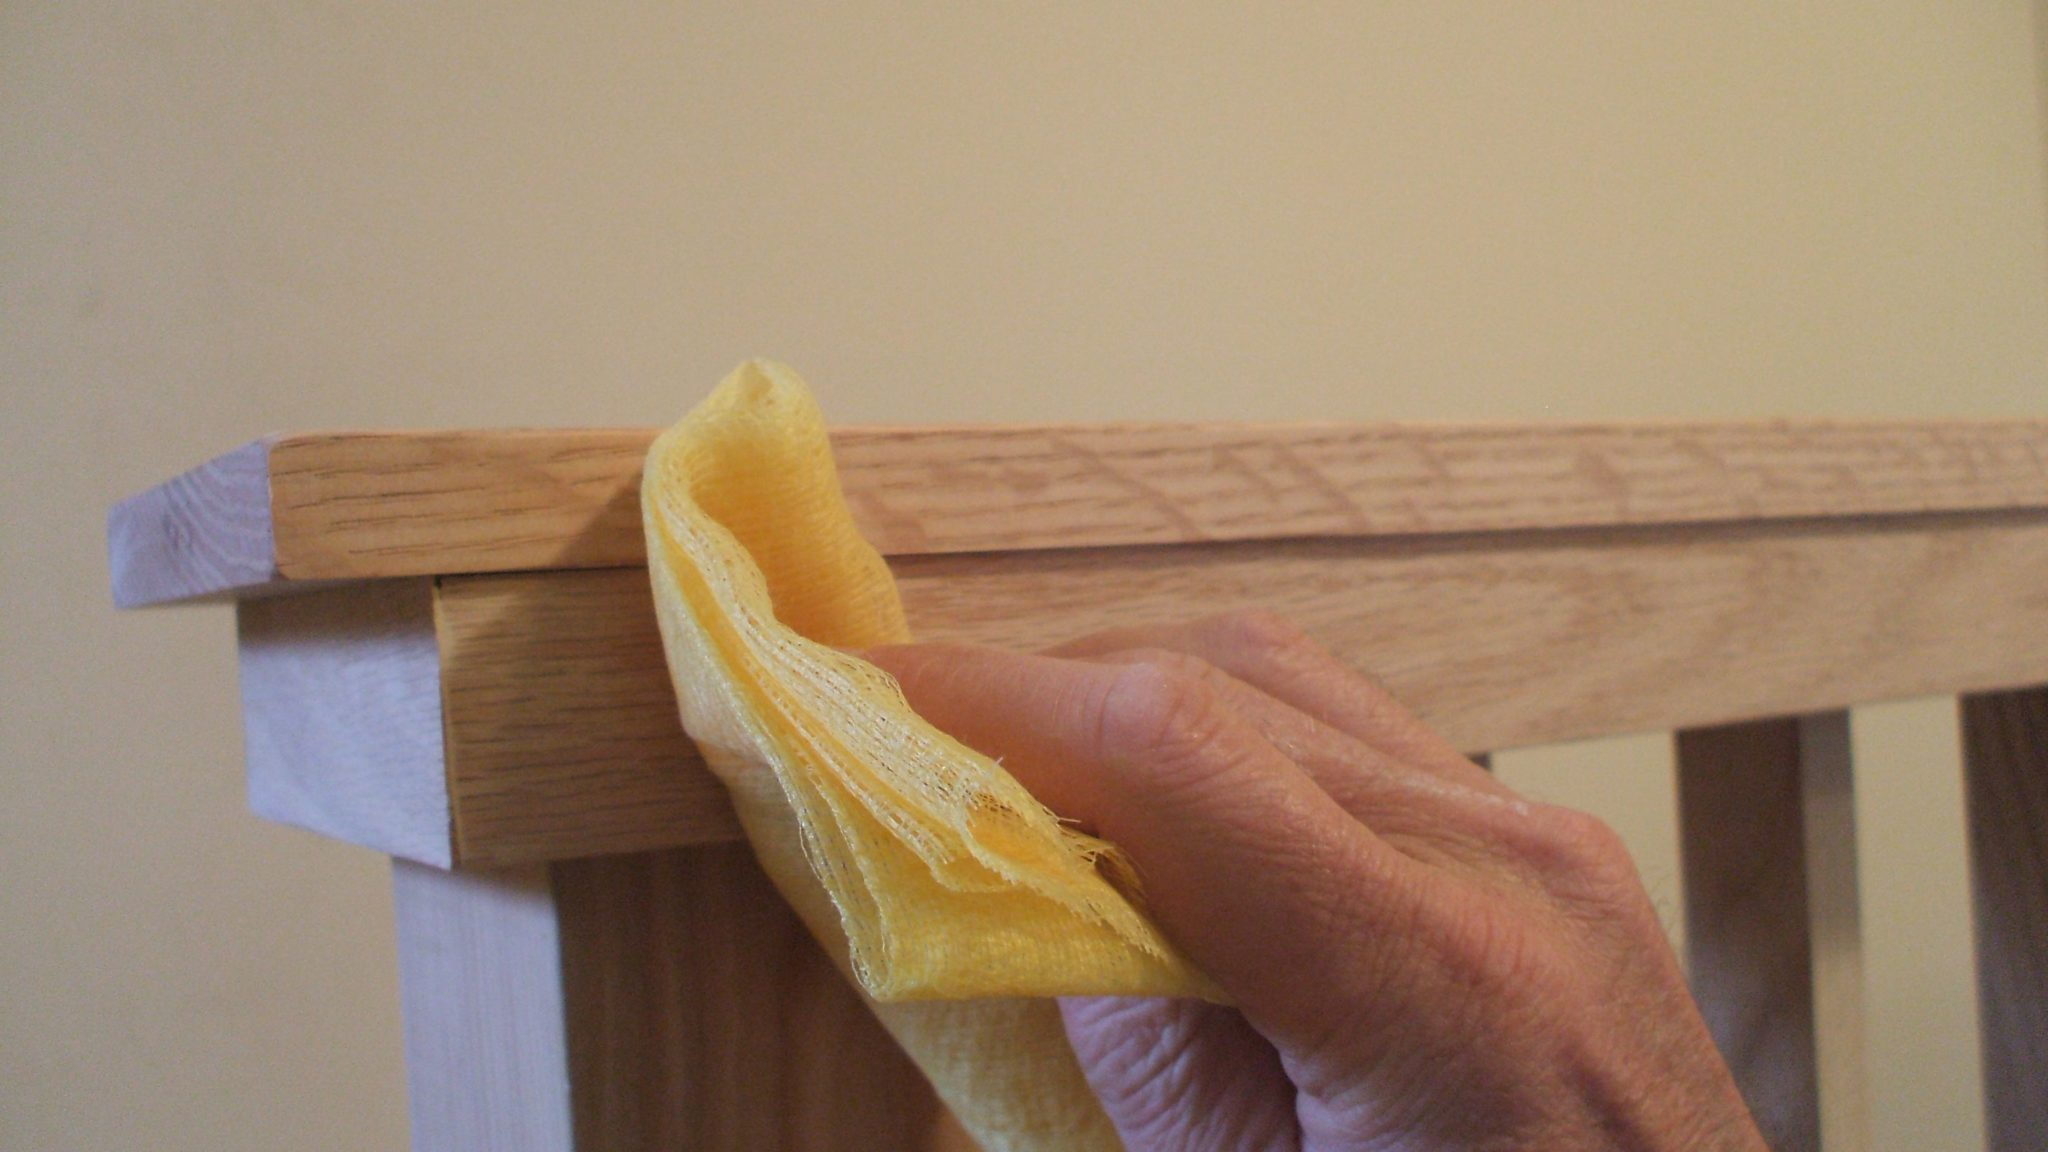 Get A Flawless Paint Job With A Tack Cloth